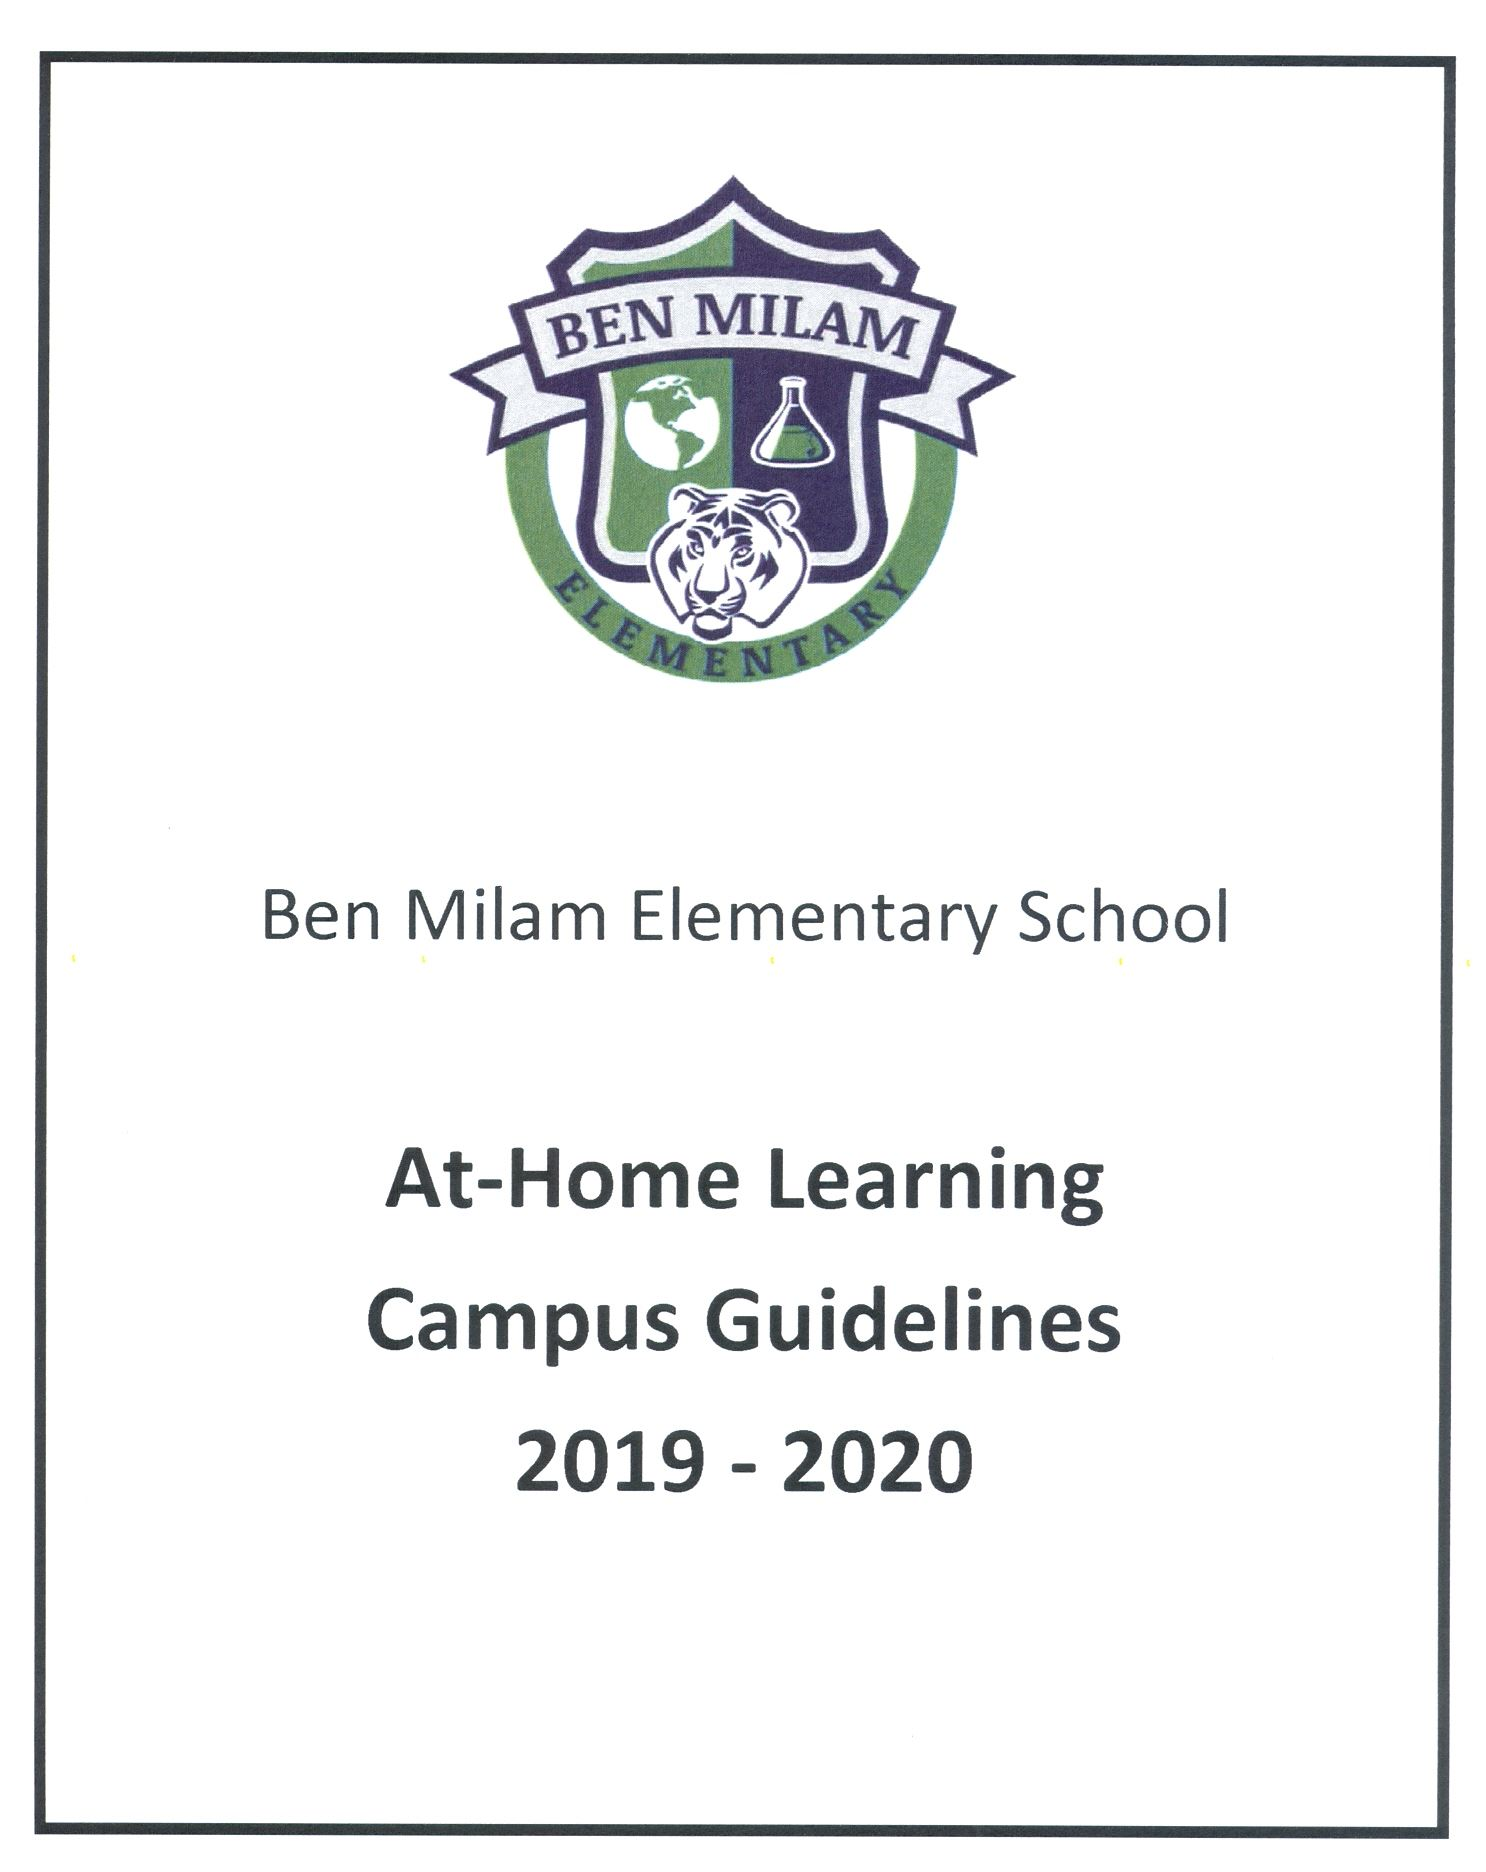 At-Home Learning Campus Guidelines